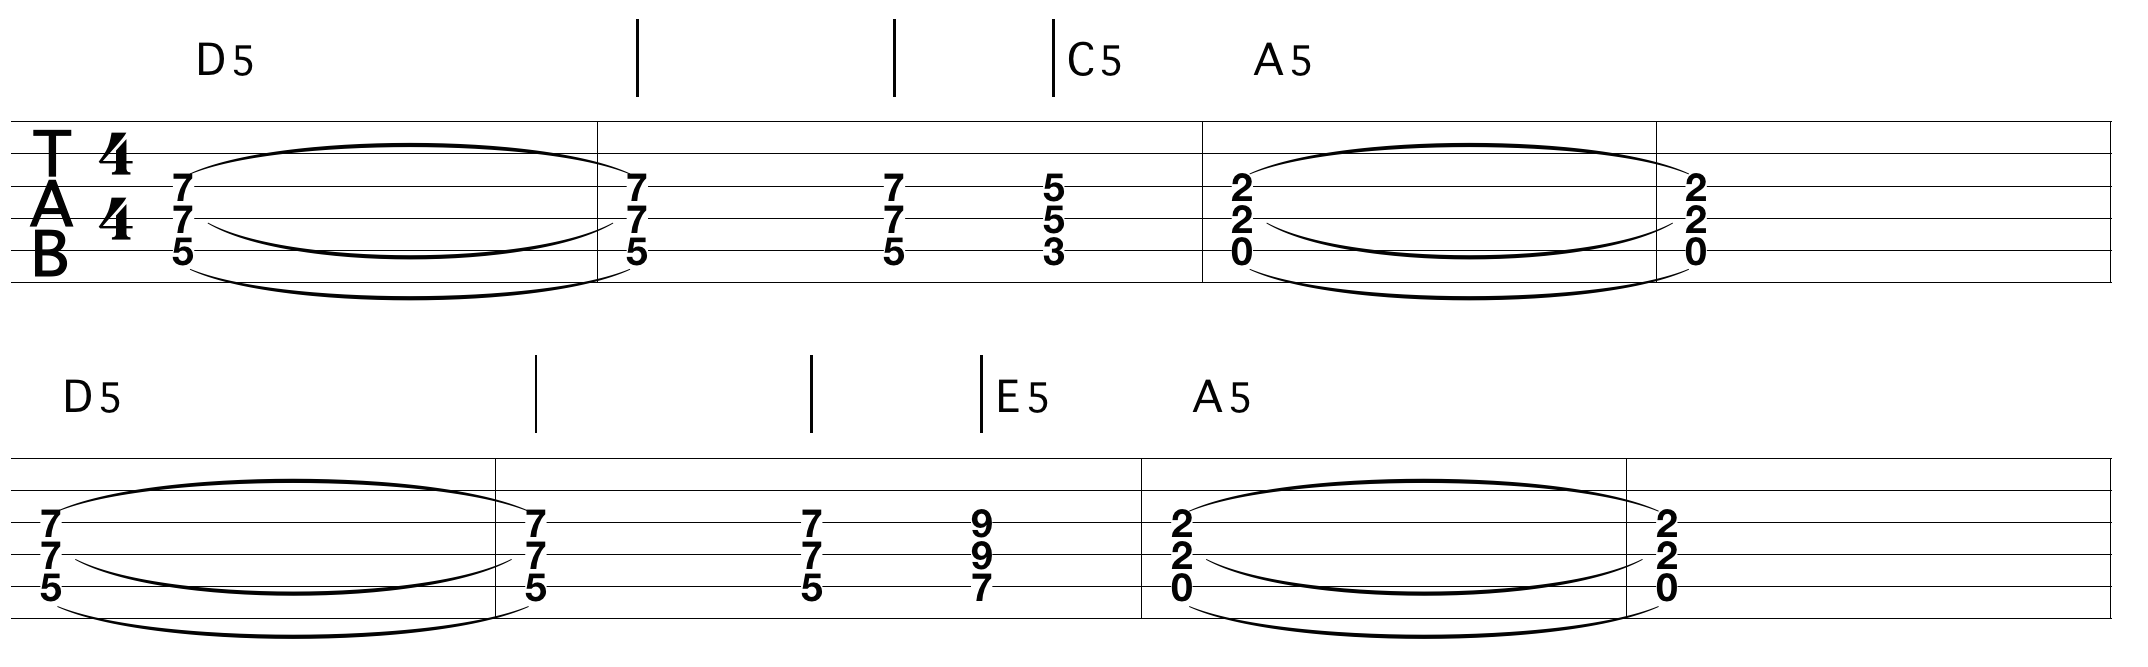 easy-guitar-tabs-for-beginners-electric_1.png